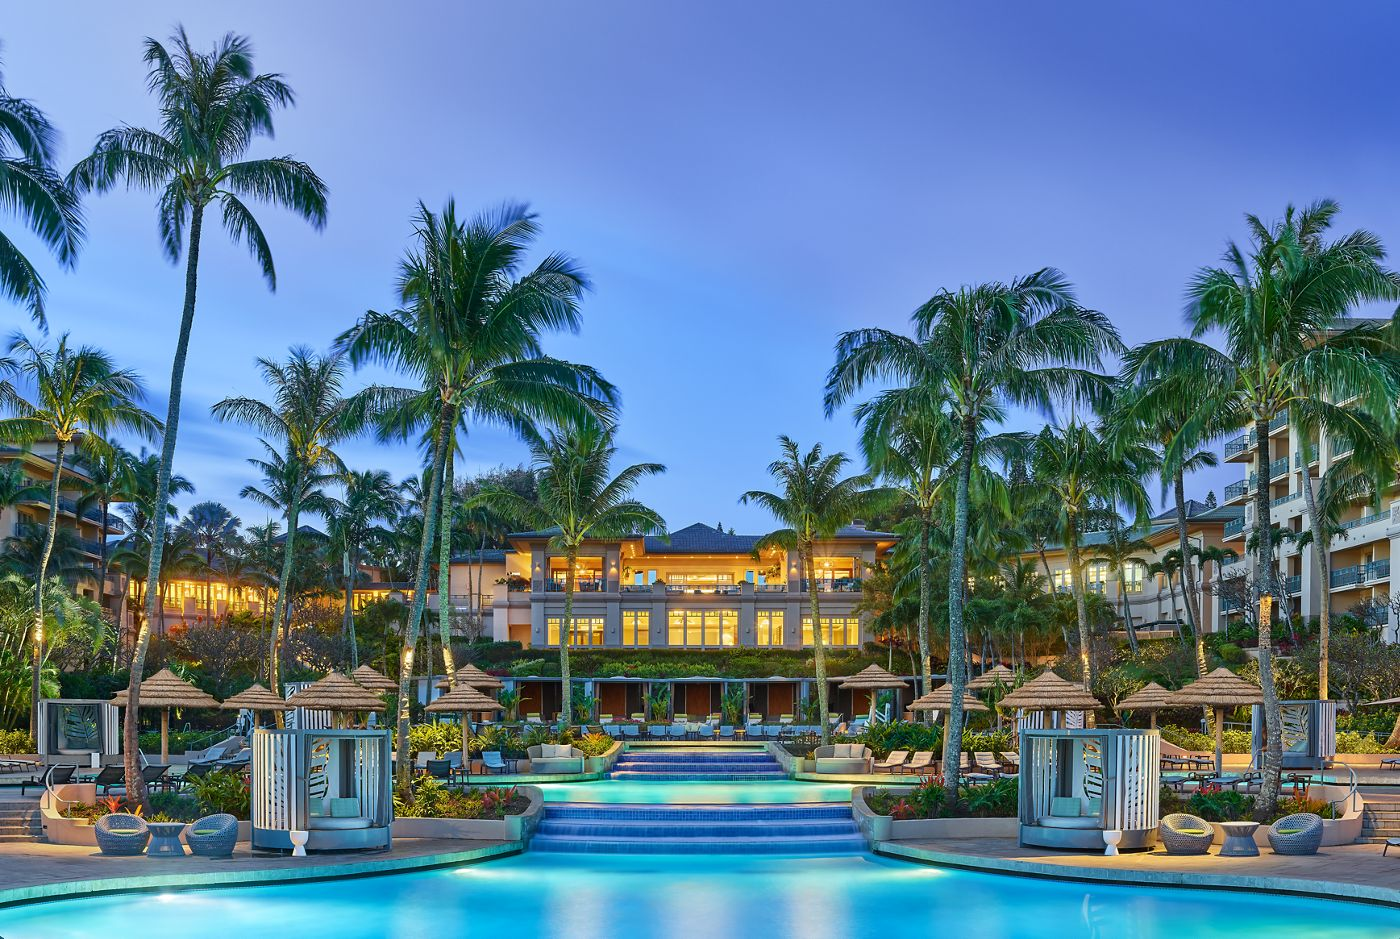 The Ritz Carlton Hawaii